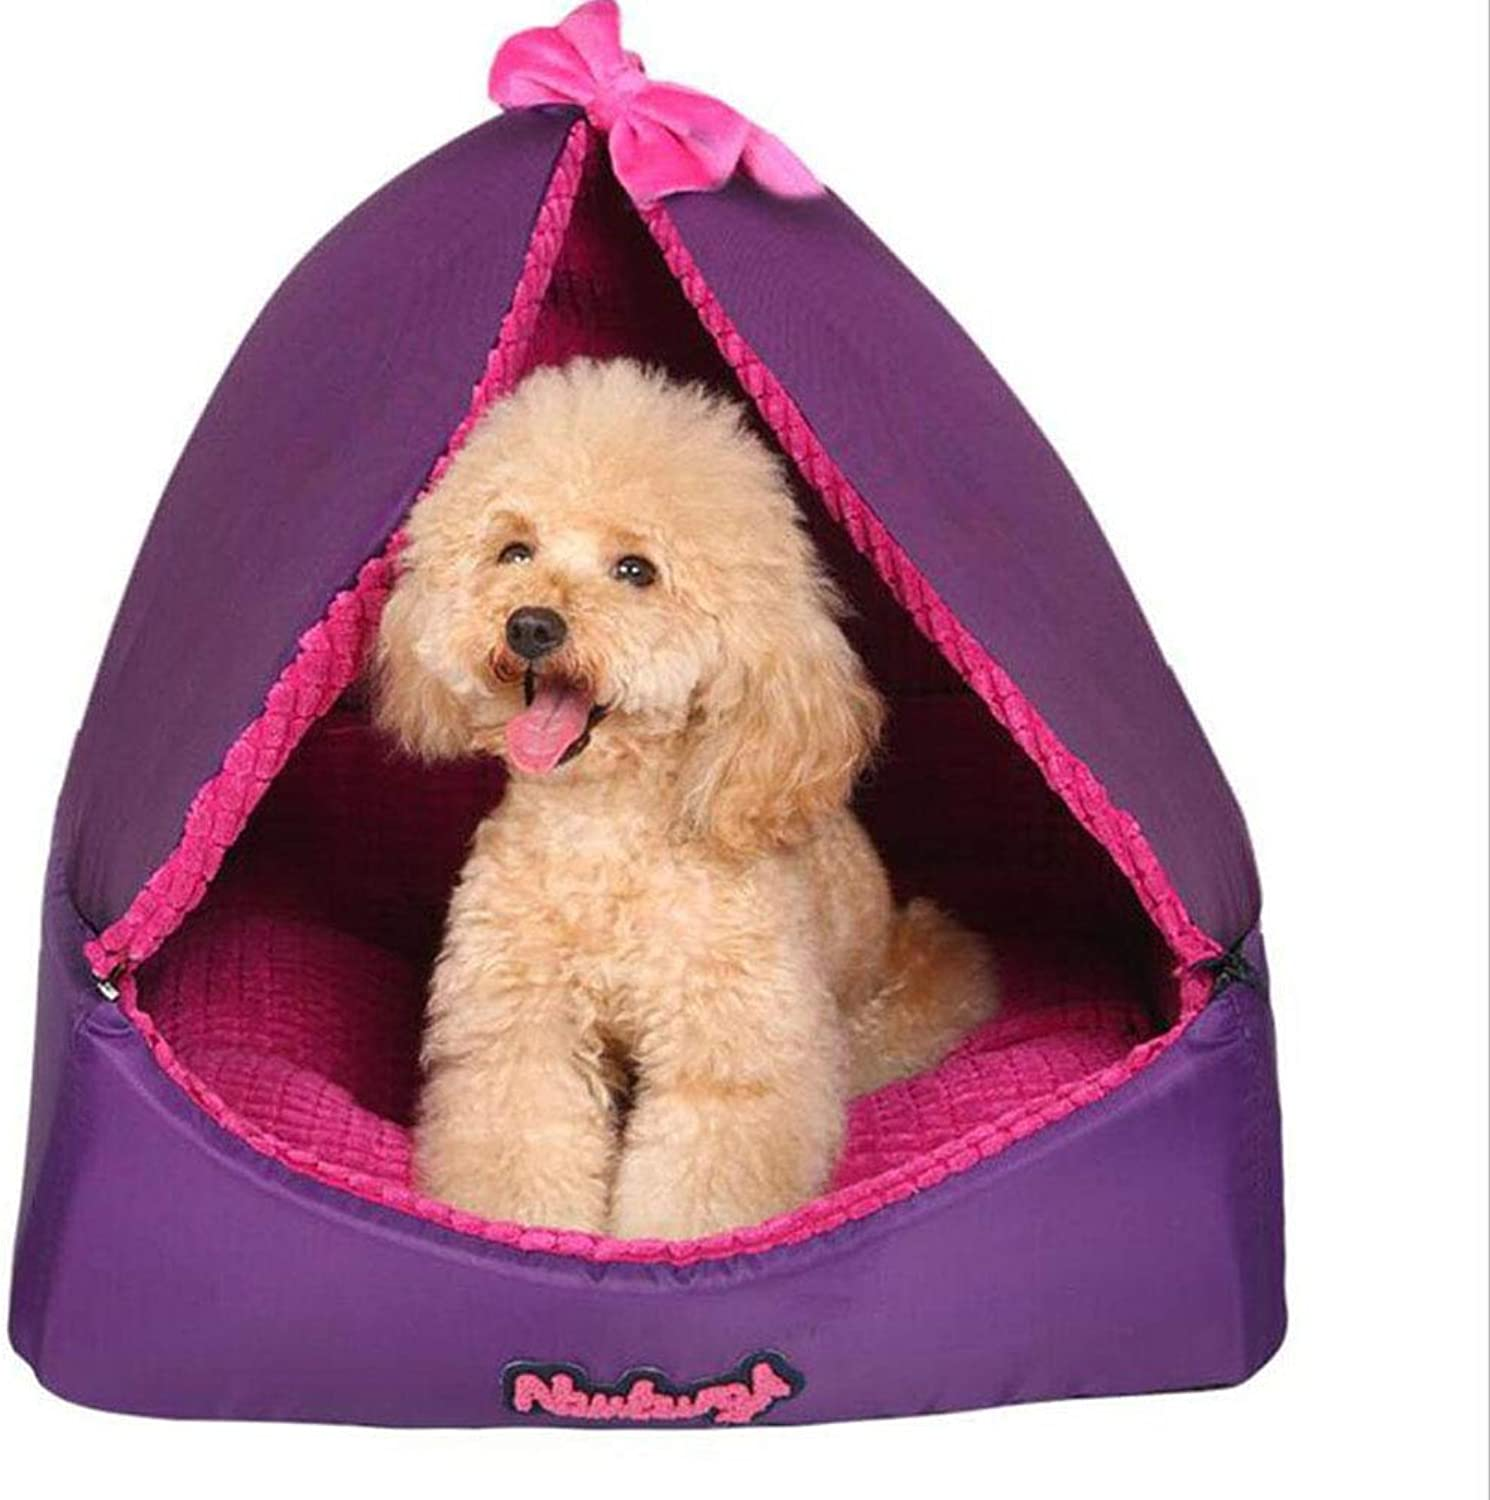 H.ZHOU Dogs and Cats Bed Liners & Mats Dog House Removable Washable Cat House Pet Supplies Small Dogs Seasons Pet House (Size   S)